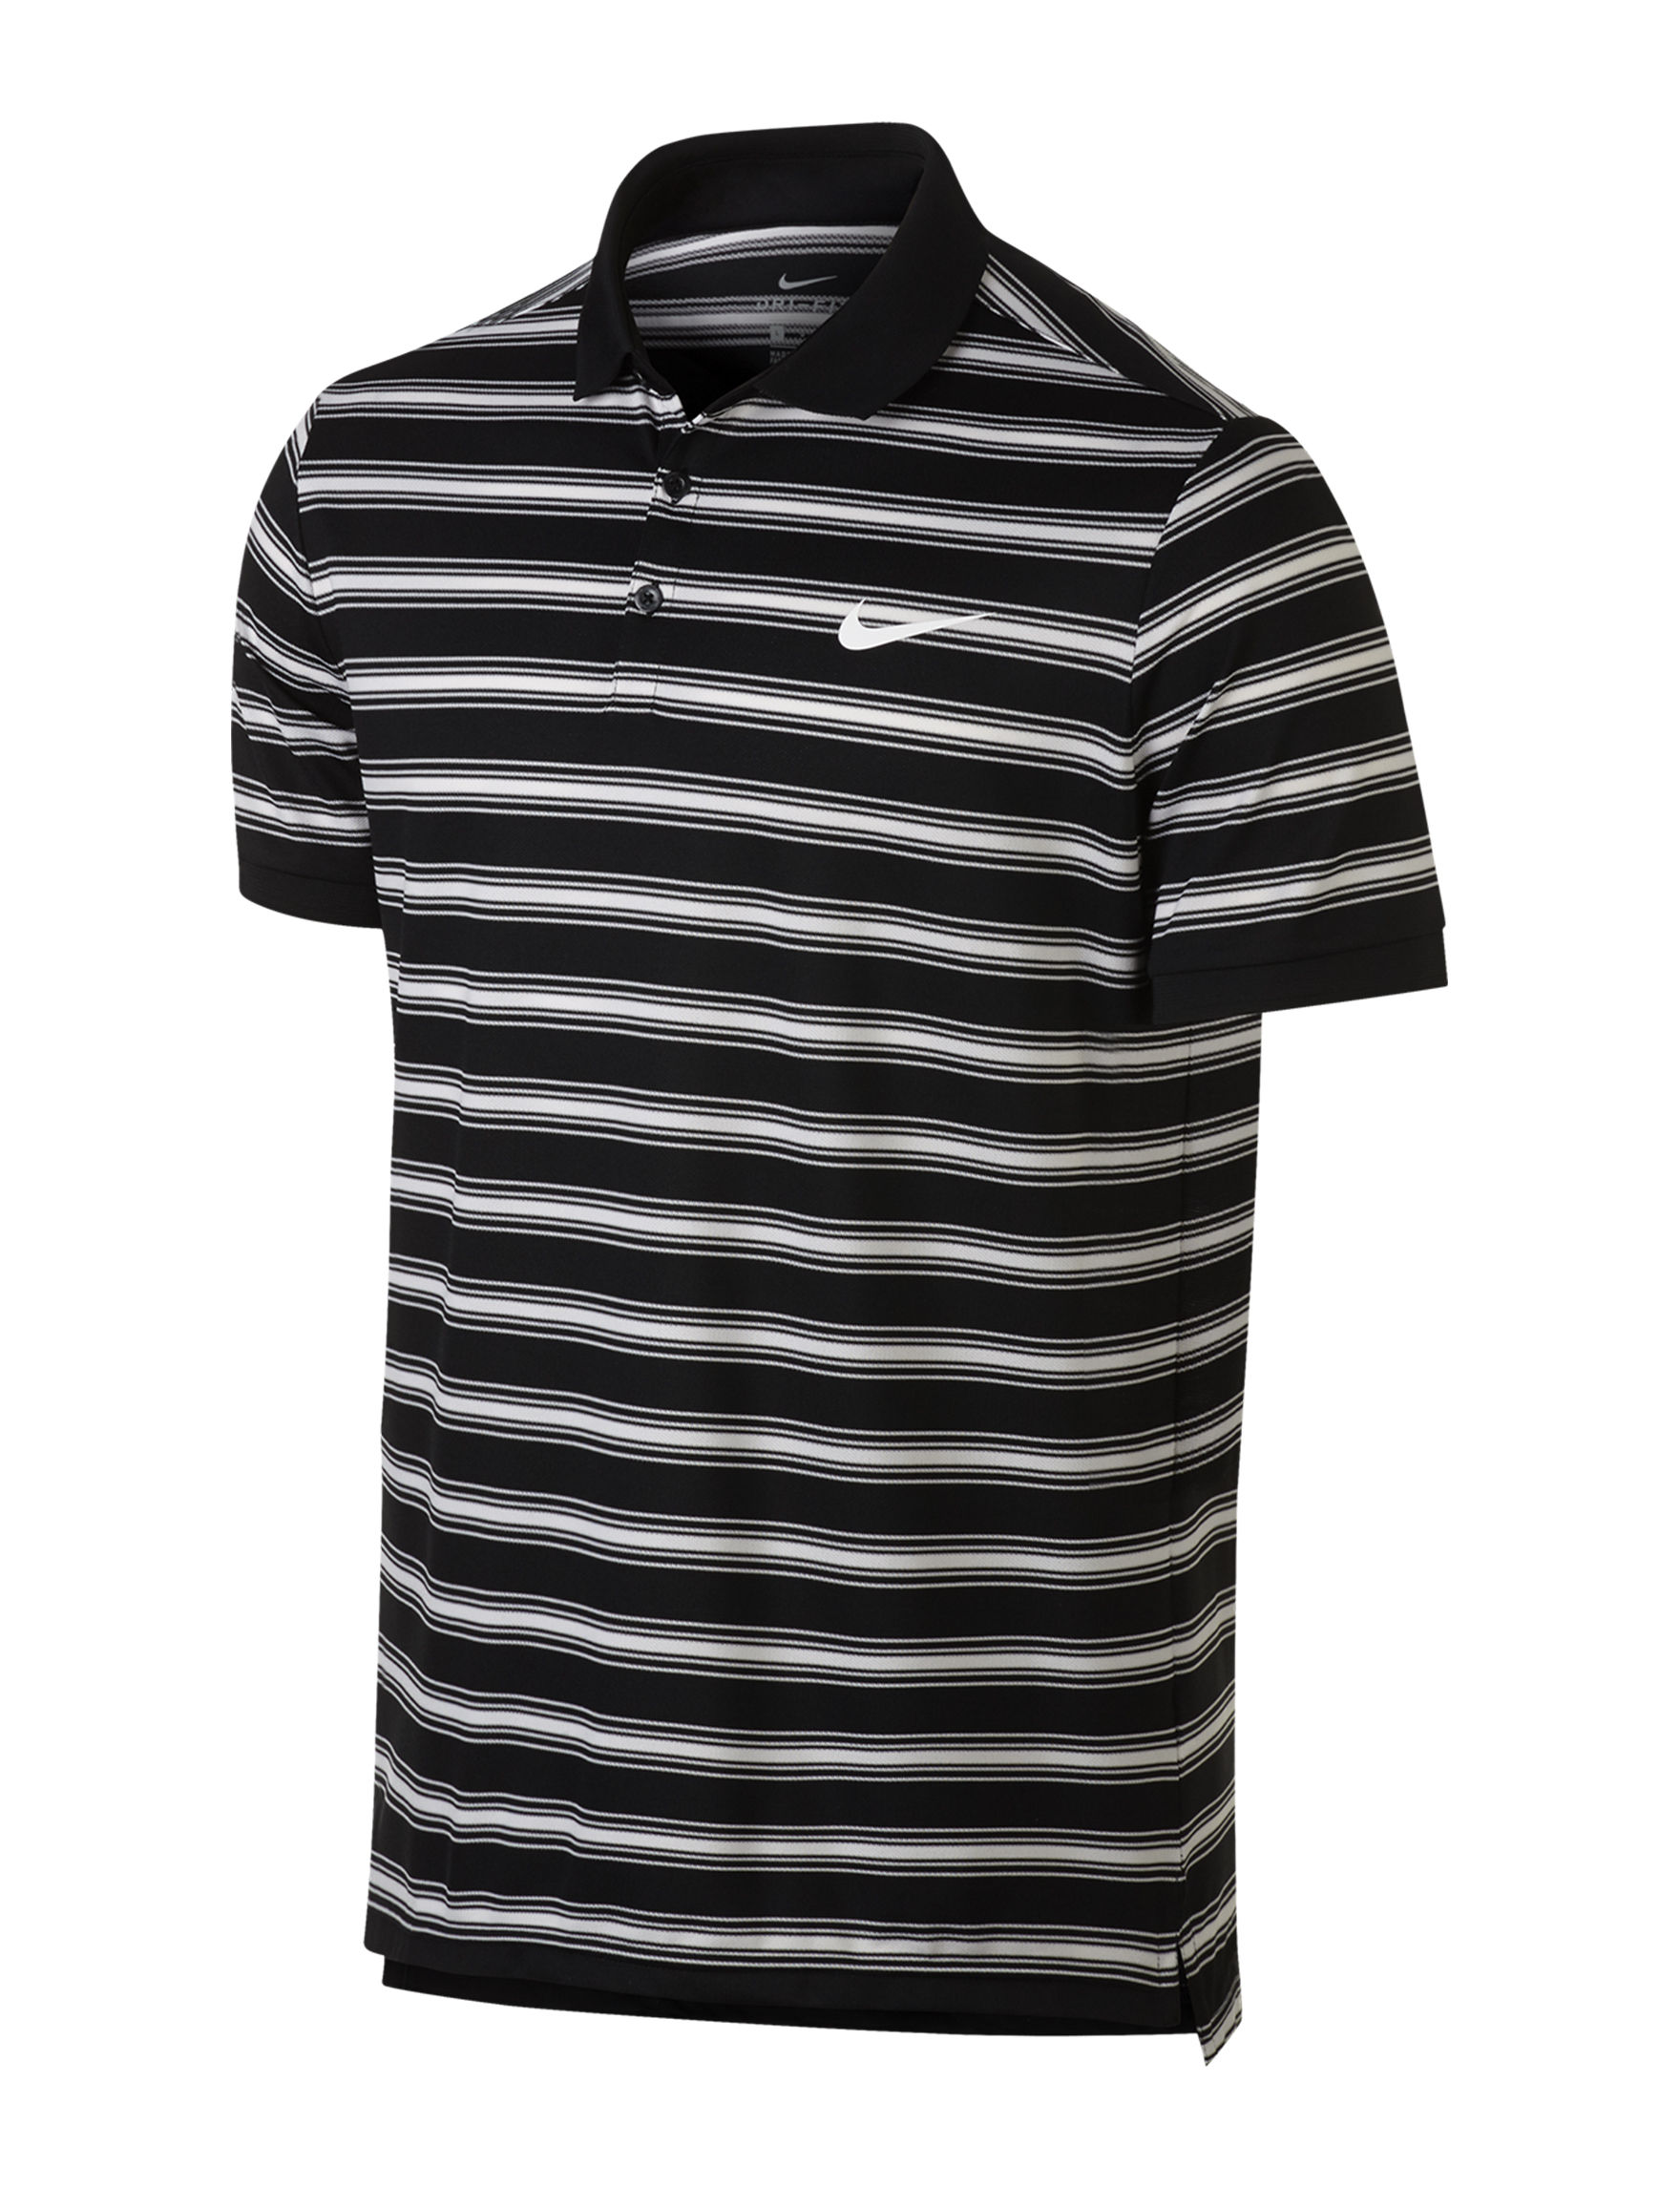 fed7ff0a Nike Dri Fit Polo Shirts Clearance - DREAMWORKS